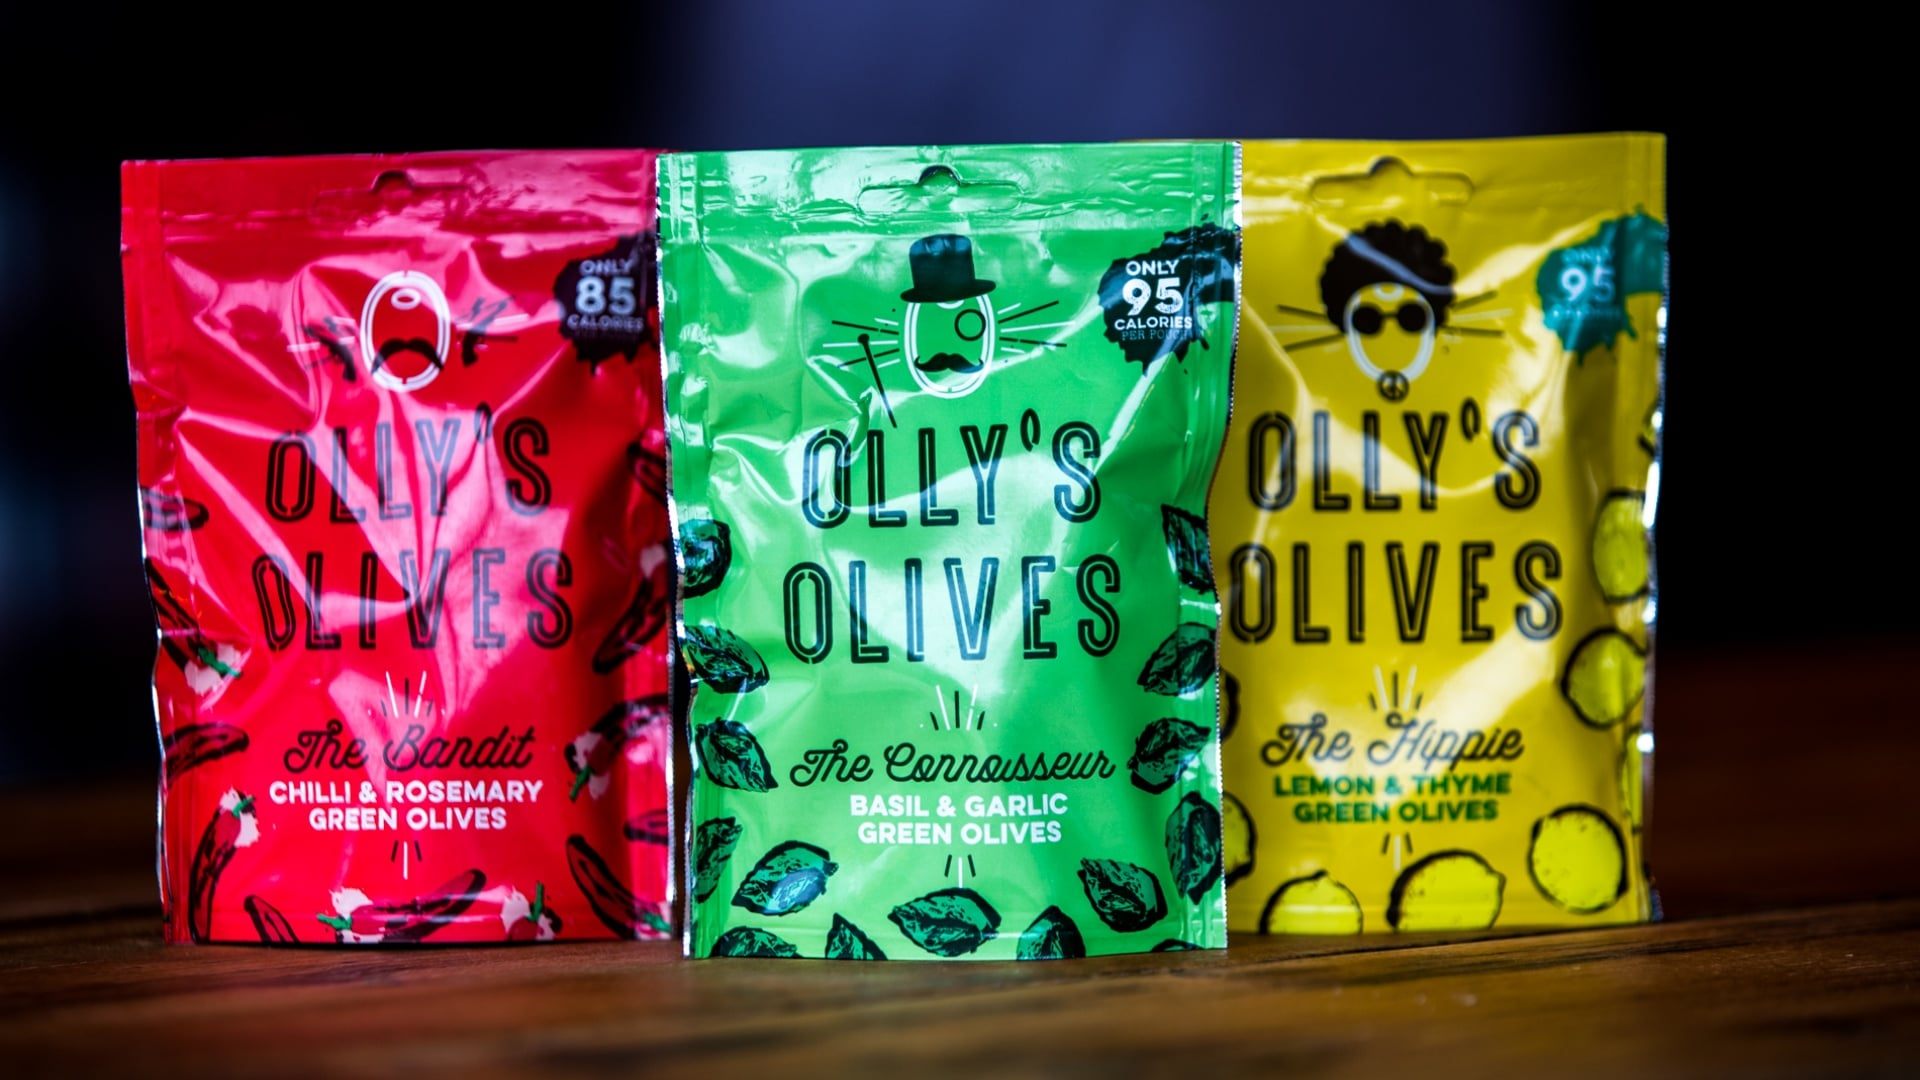 Olly's olives snack